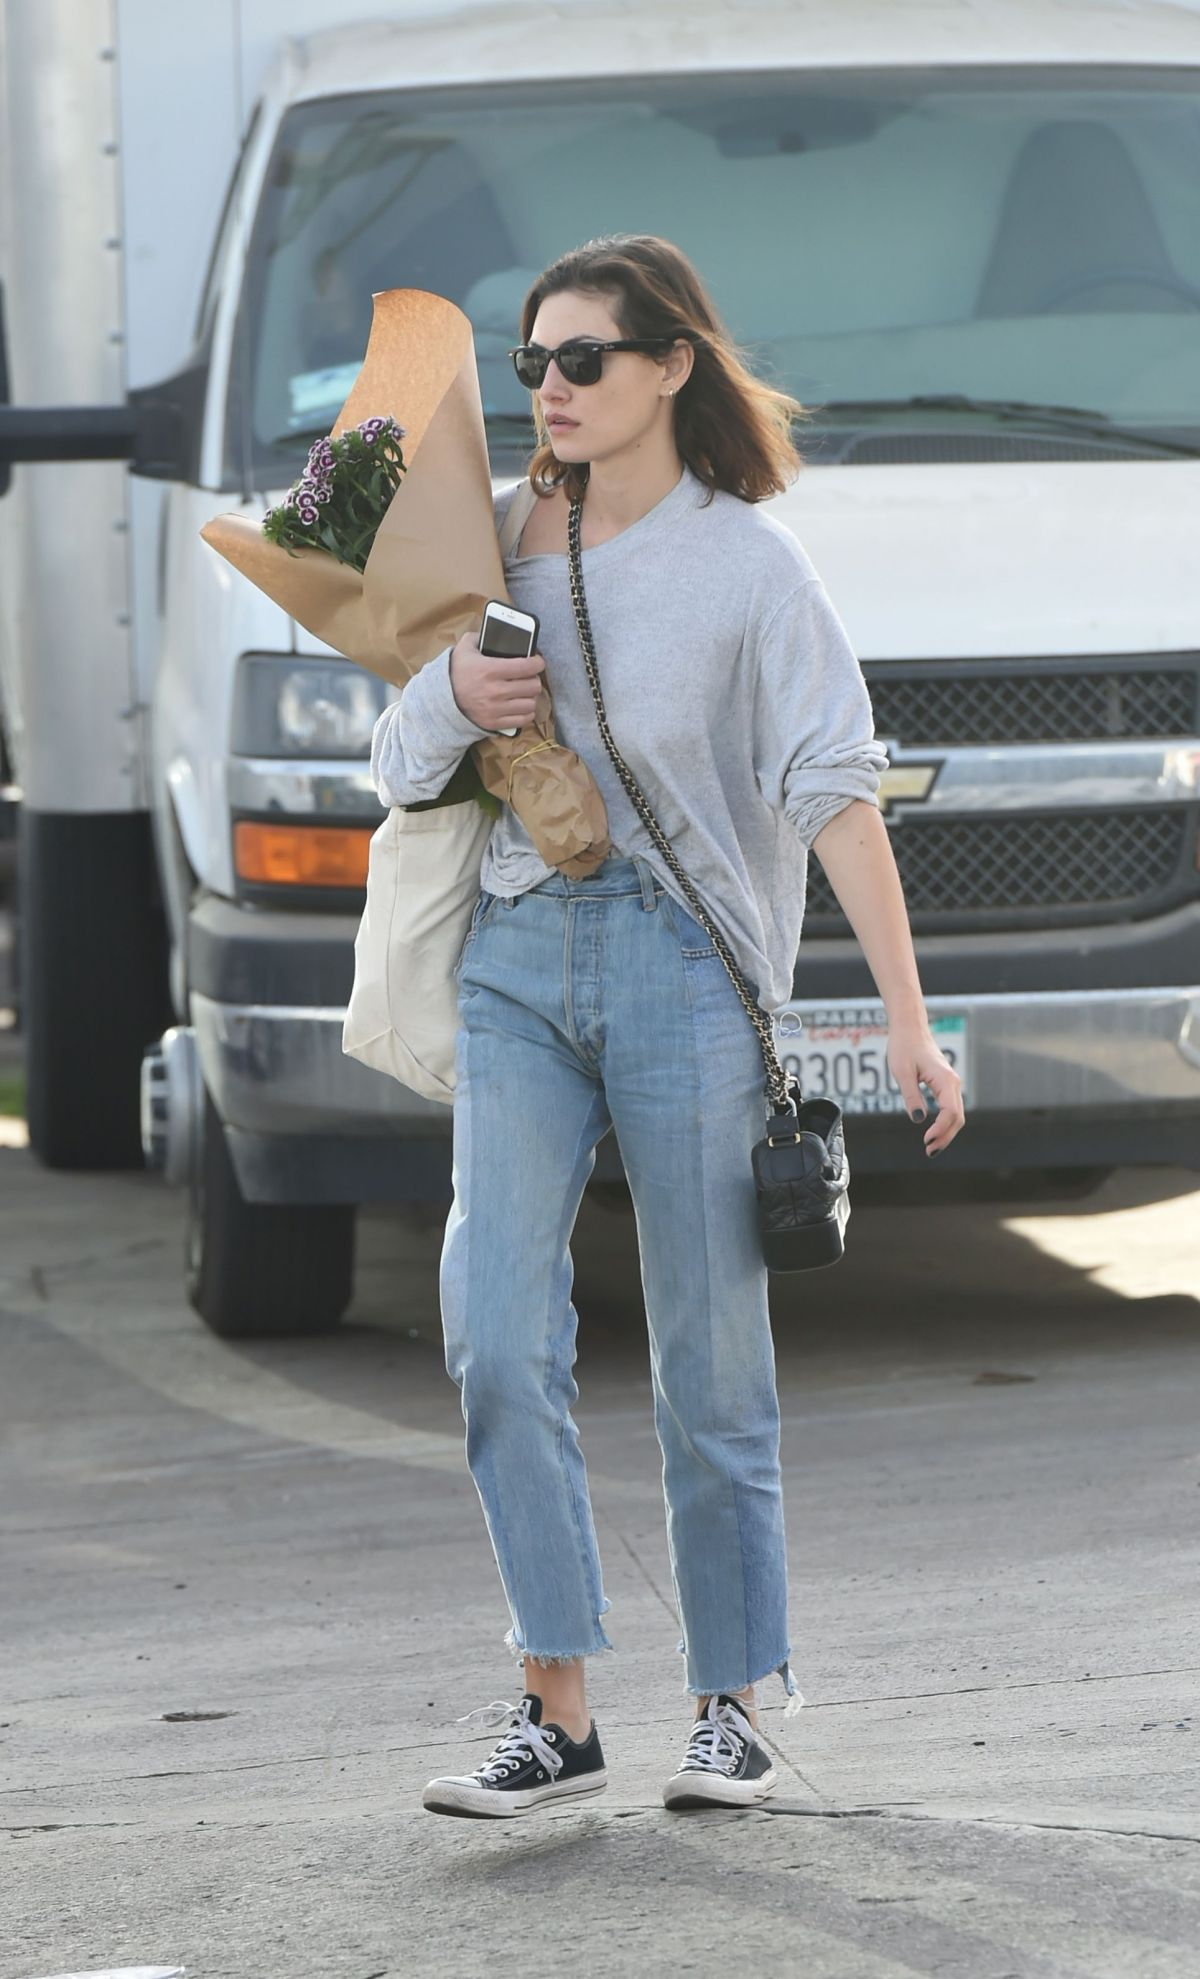 Phoebe Tonkin Ping At Farmers Market In Los Angeles 12 10 2017